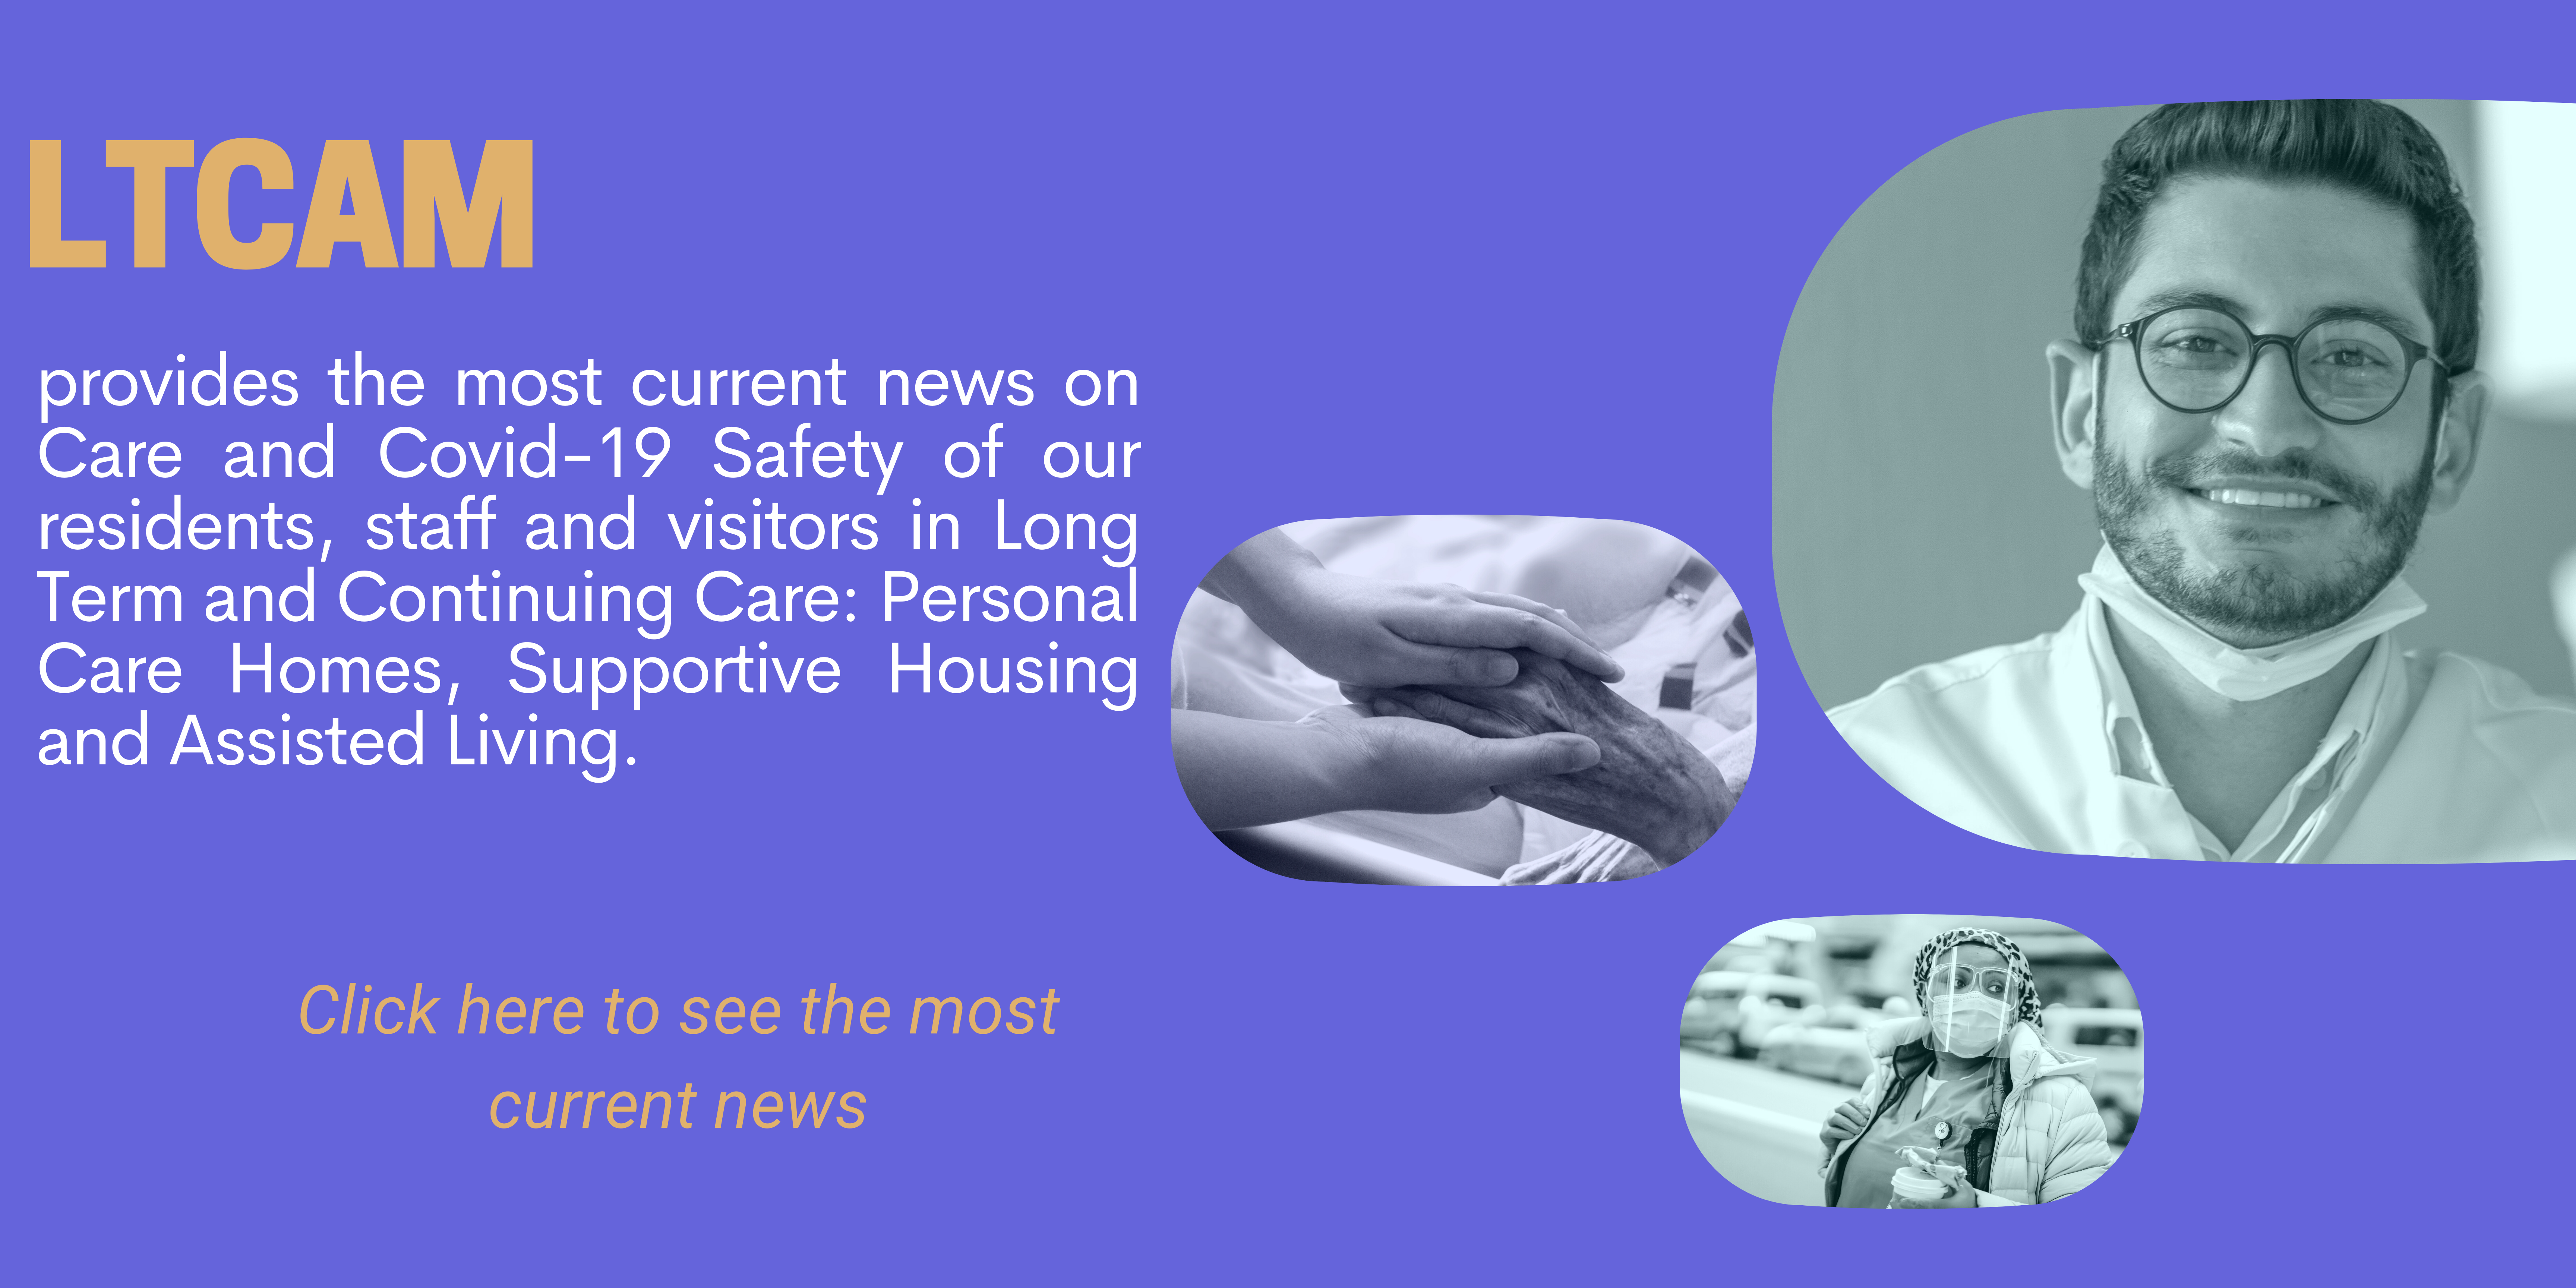 LTCAM-provides-the-most-current-news-on-Care-and-Covid-19-Safety-of-our-residents--staff-and-visitors-in-Long-Term-and-Continuing-Care-Personal-Care-Homes--Supportive-Housing-and-Assisted-Living.-(4).png